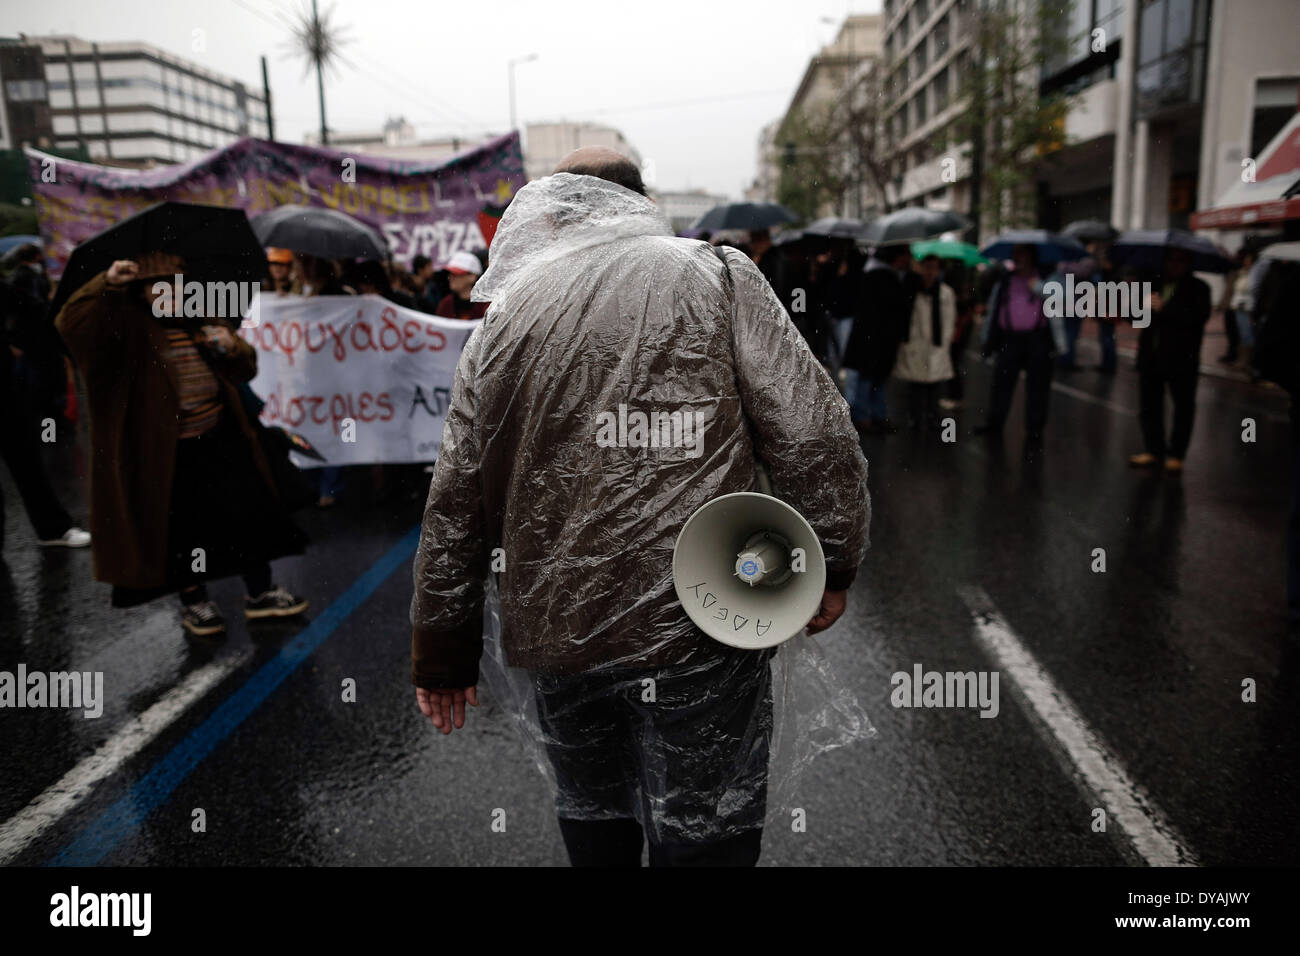 Athens, Greece. 11th Apr, 2014. Protester carries a megaphone during the protest Credit:  Konstantinos Tsakalidis/Alamy Live News - Stock Image